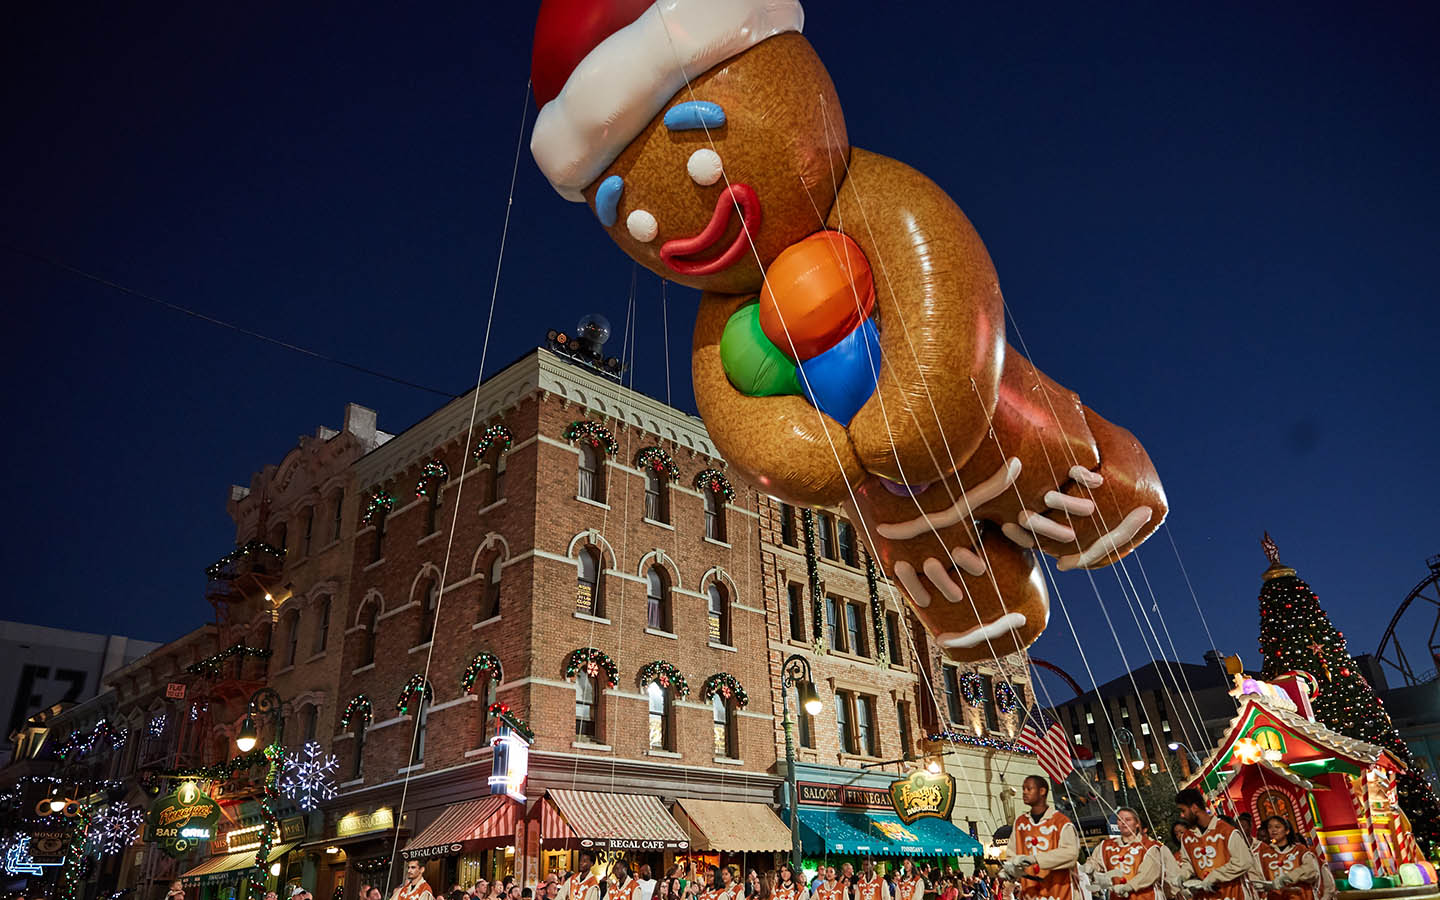 Gingy-Balloon-Universals-Holiday-Parade-Featuring-Macys.jpg